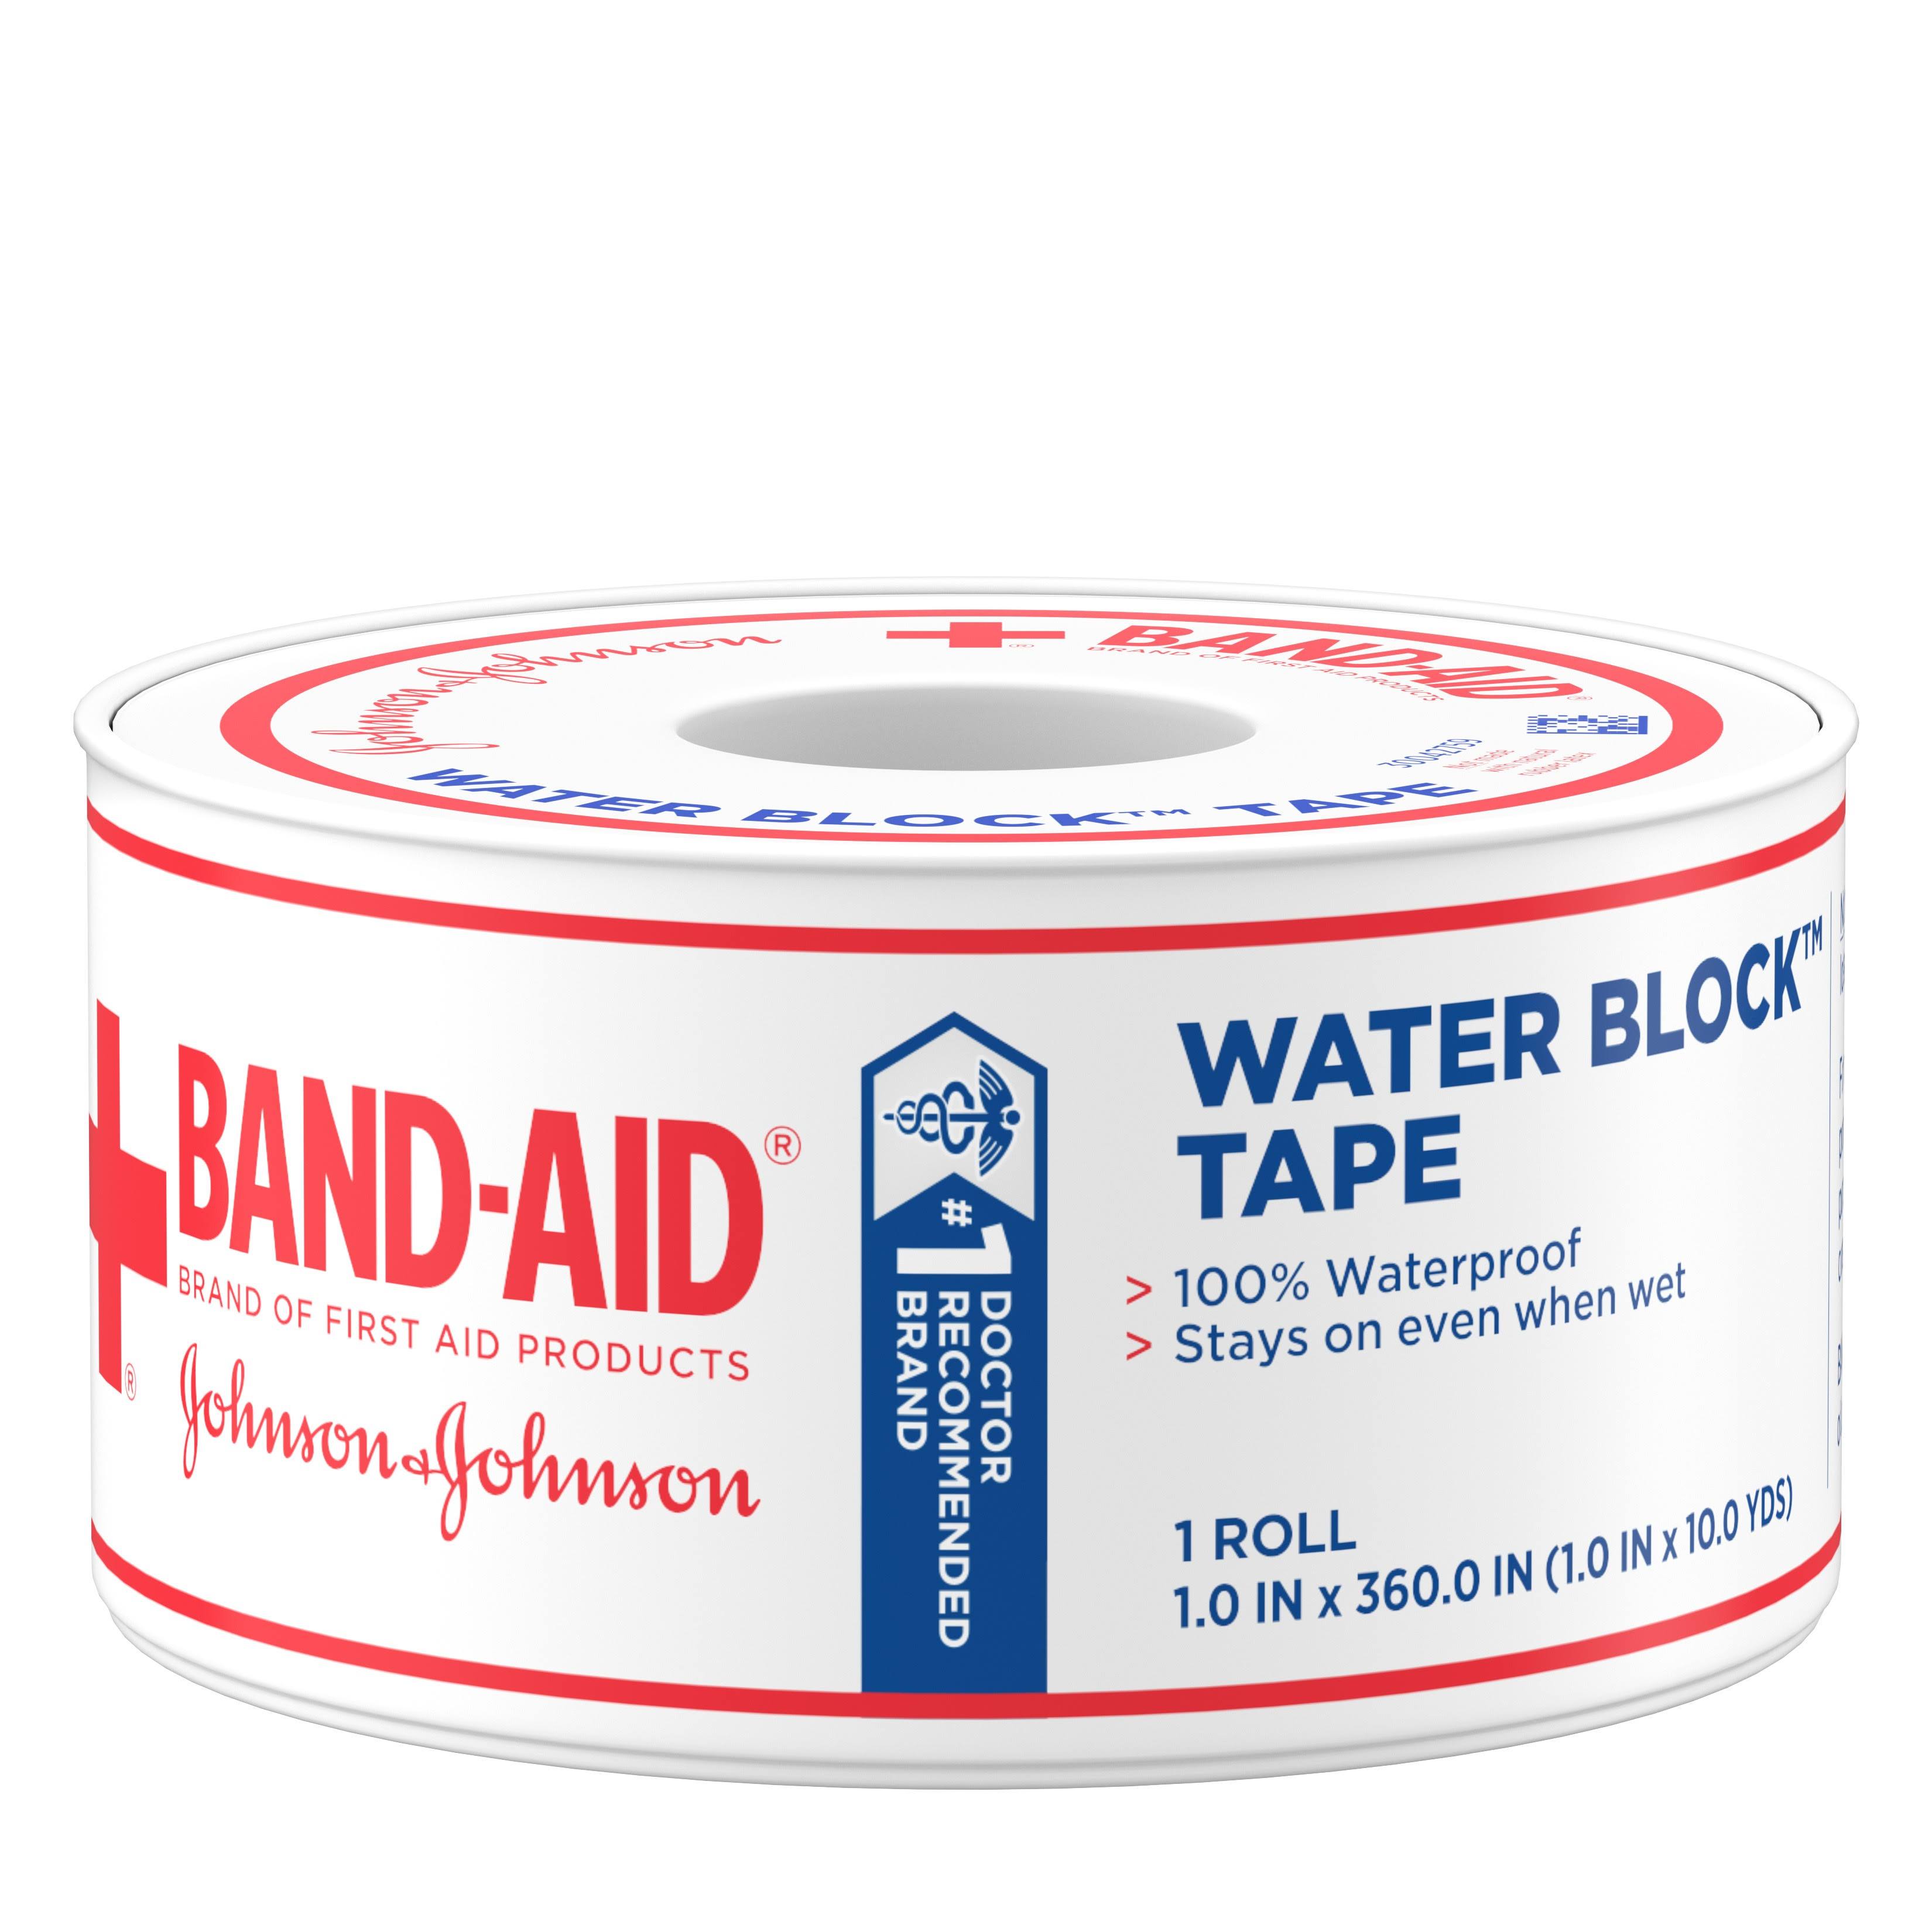 Band-Aid Brand First Aid Water Block Waterproof Adhesive Tape Roll, 1 in x 10 yd